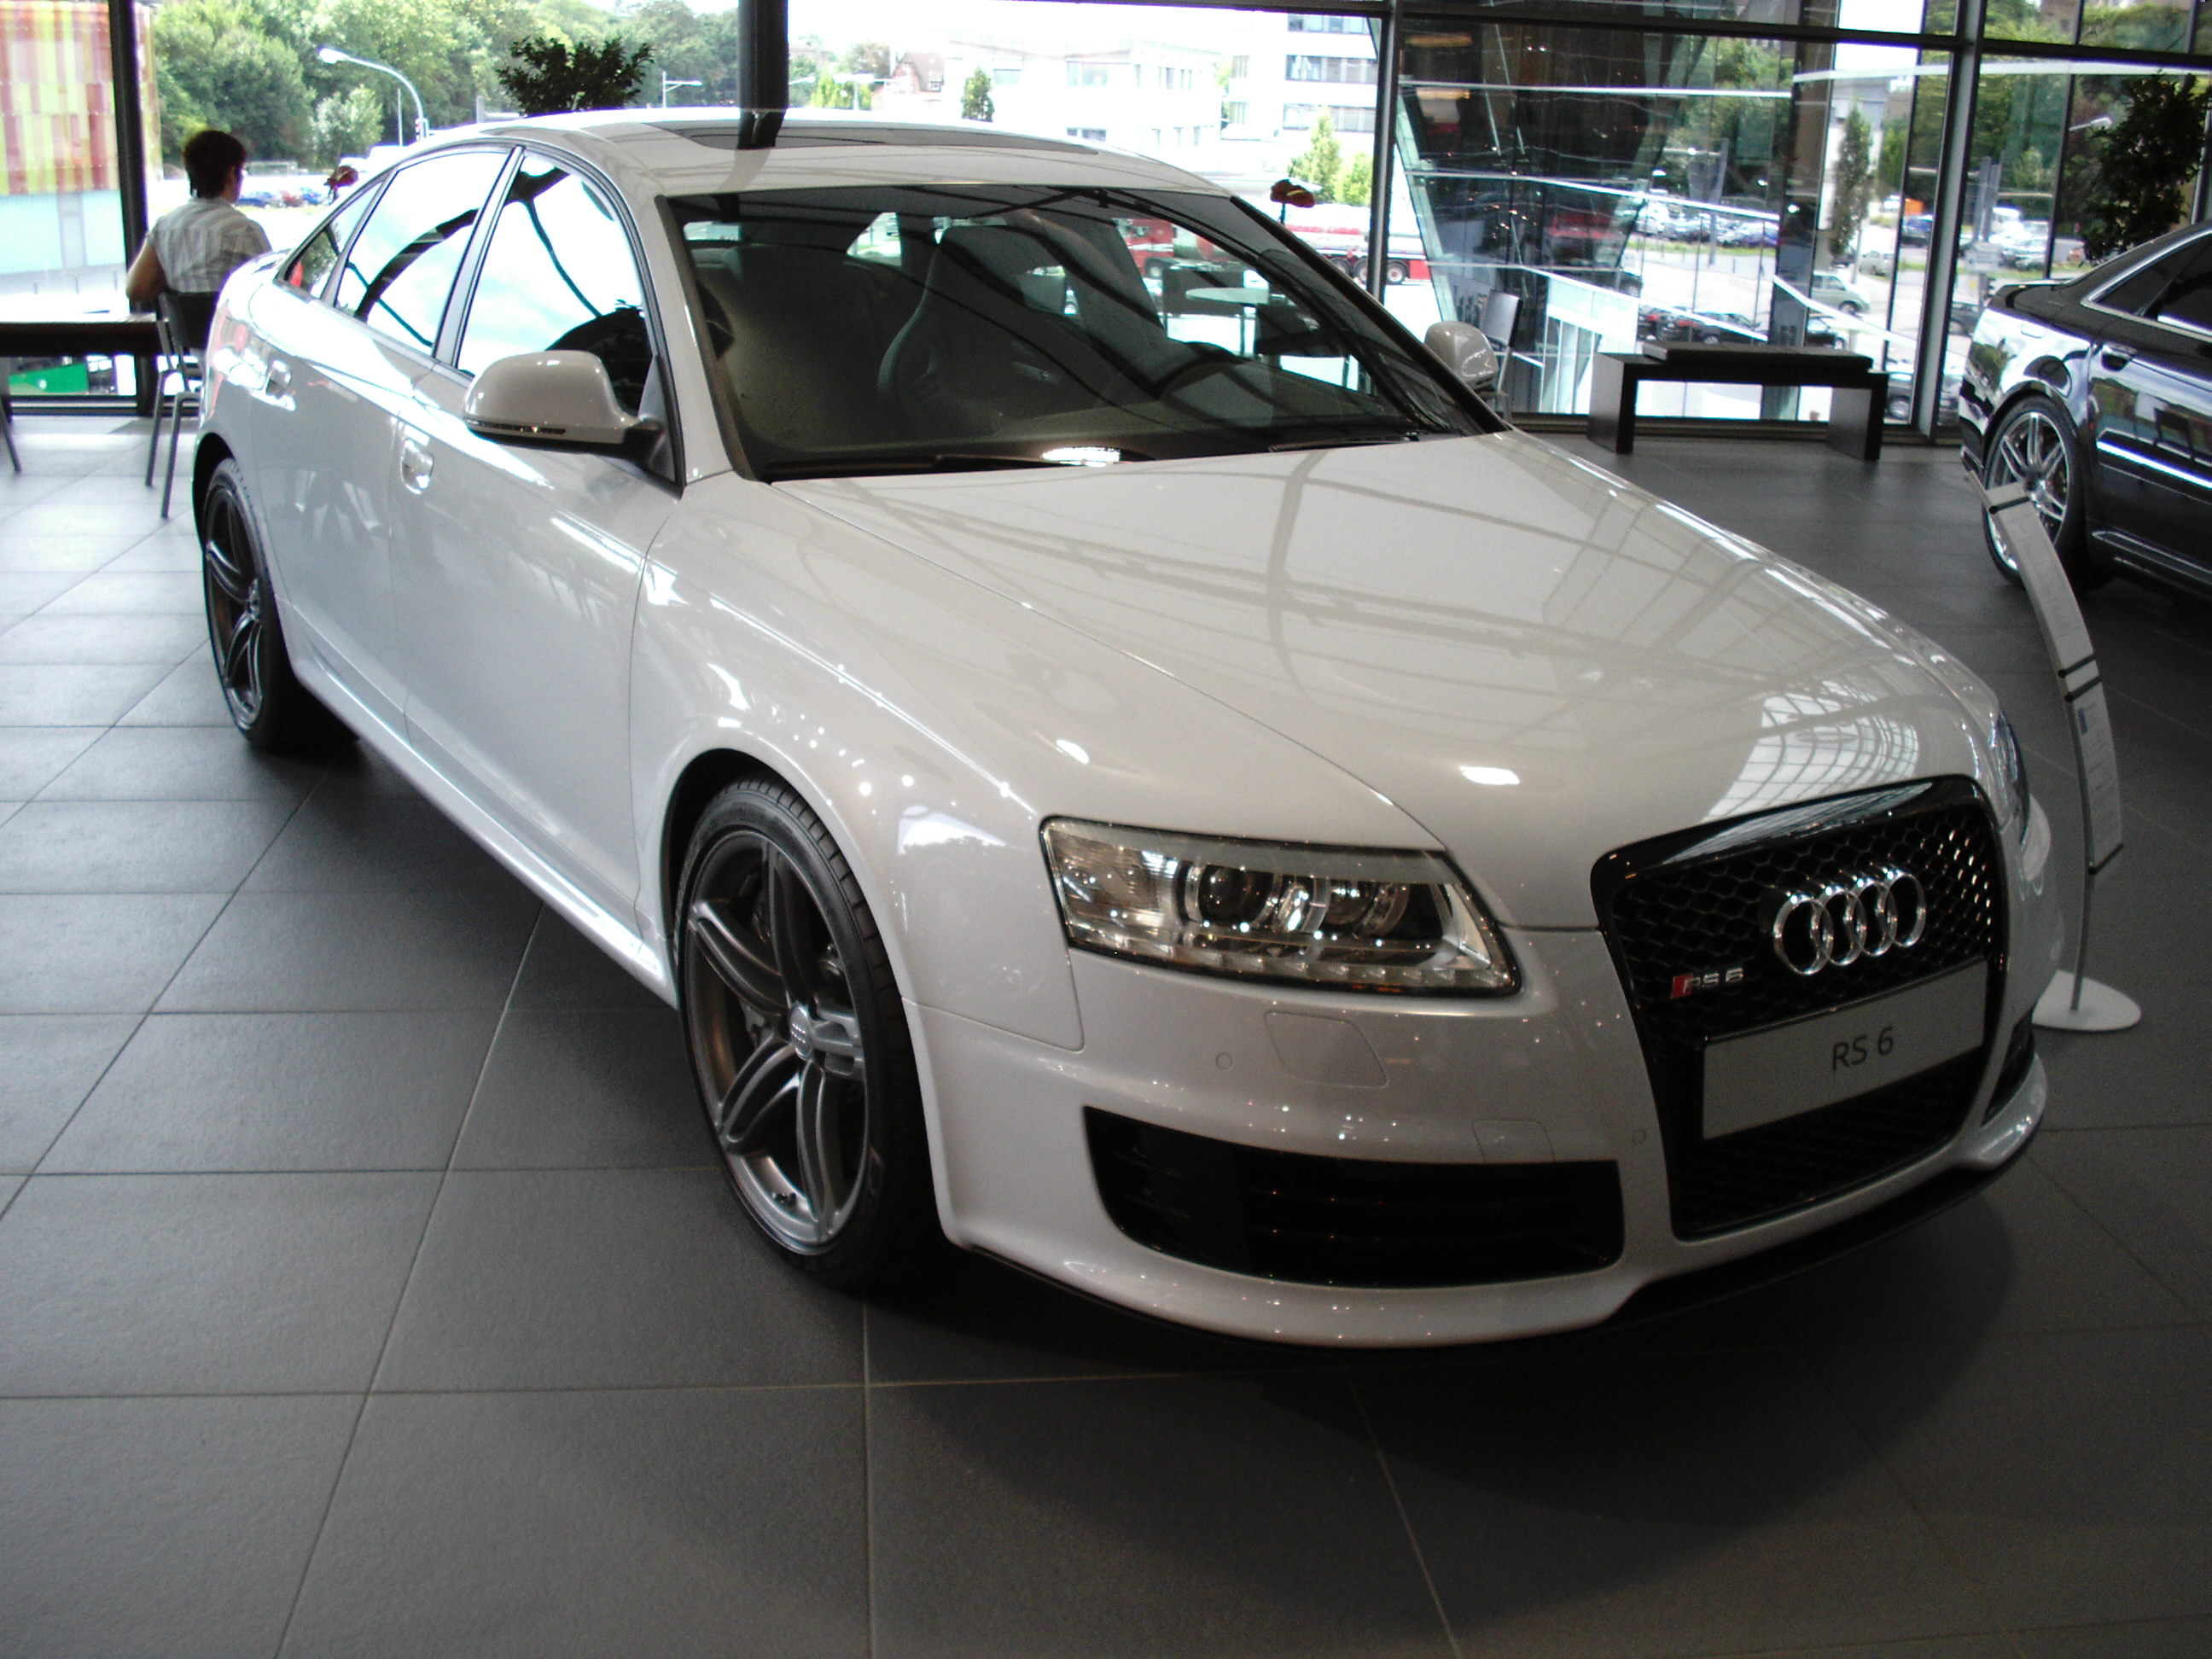 2007 Audi A6 (4f,c6) - pictures, information and specs ...